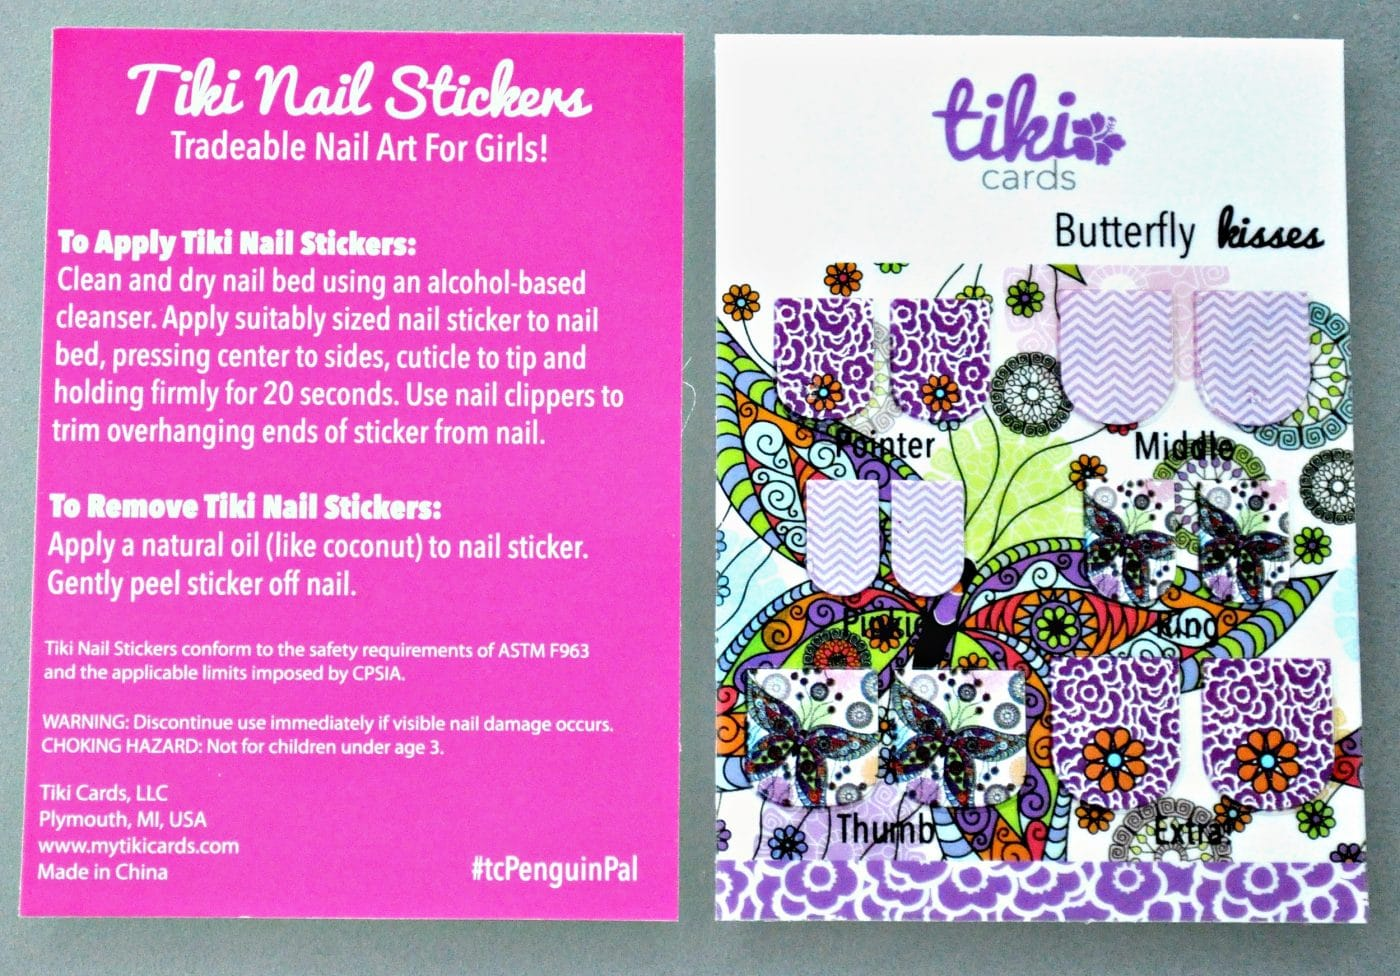 Tiki Nail Stickers Butterfly Kisses